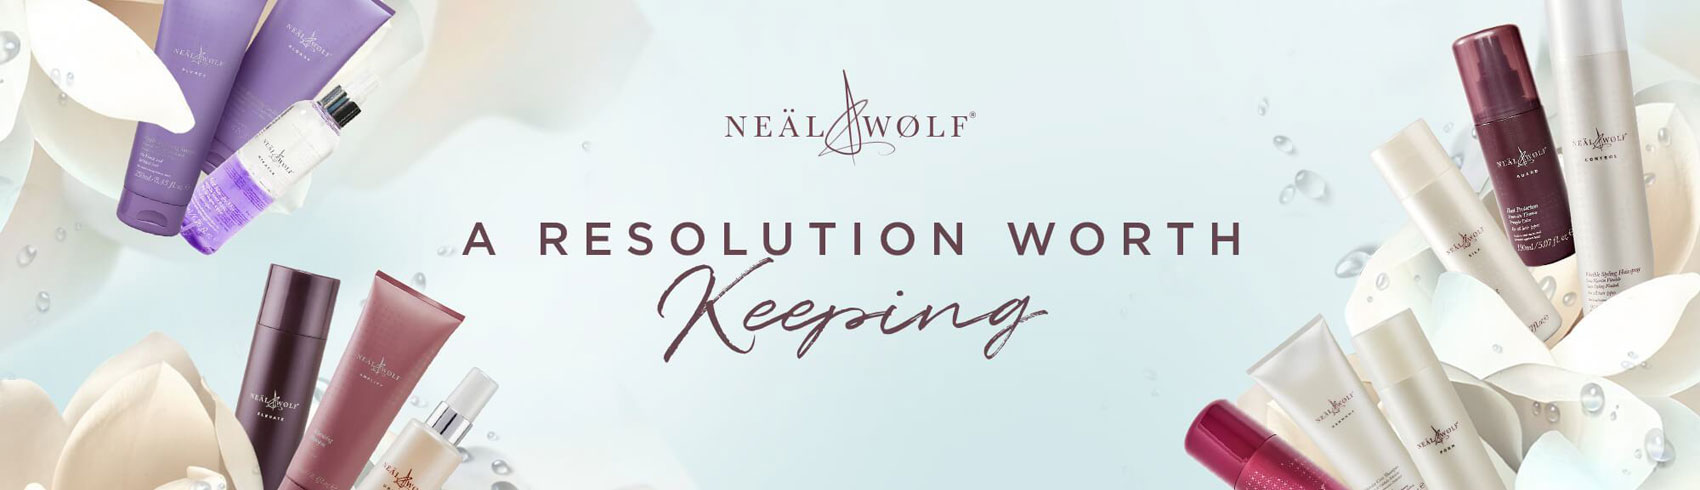 Neal & Wolf hair products